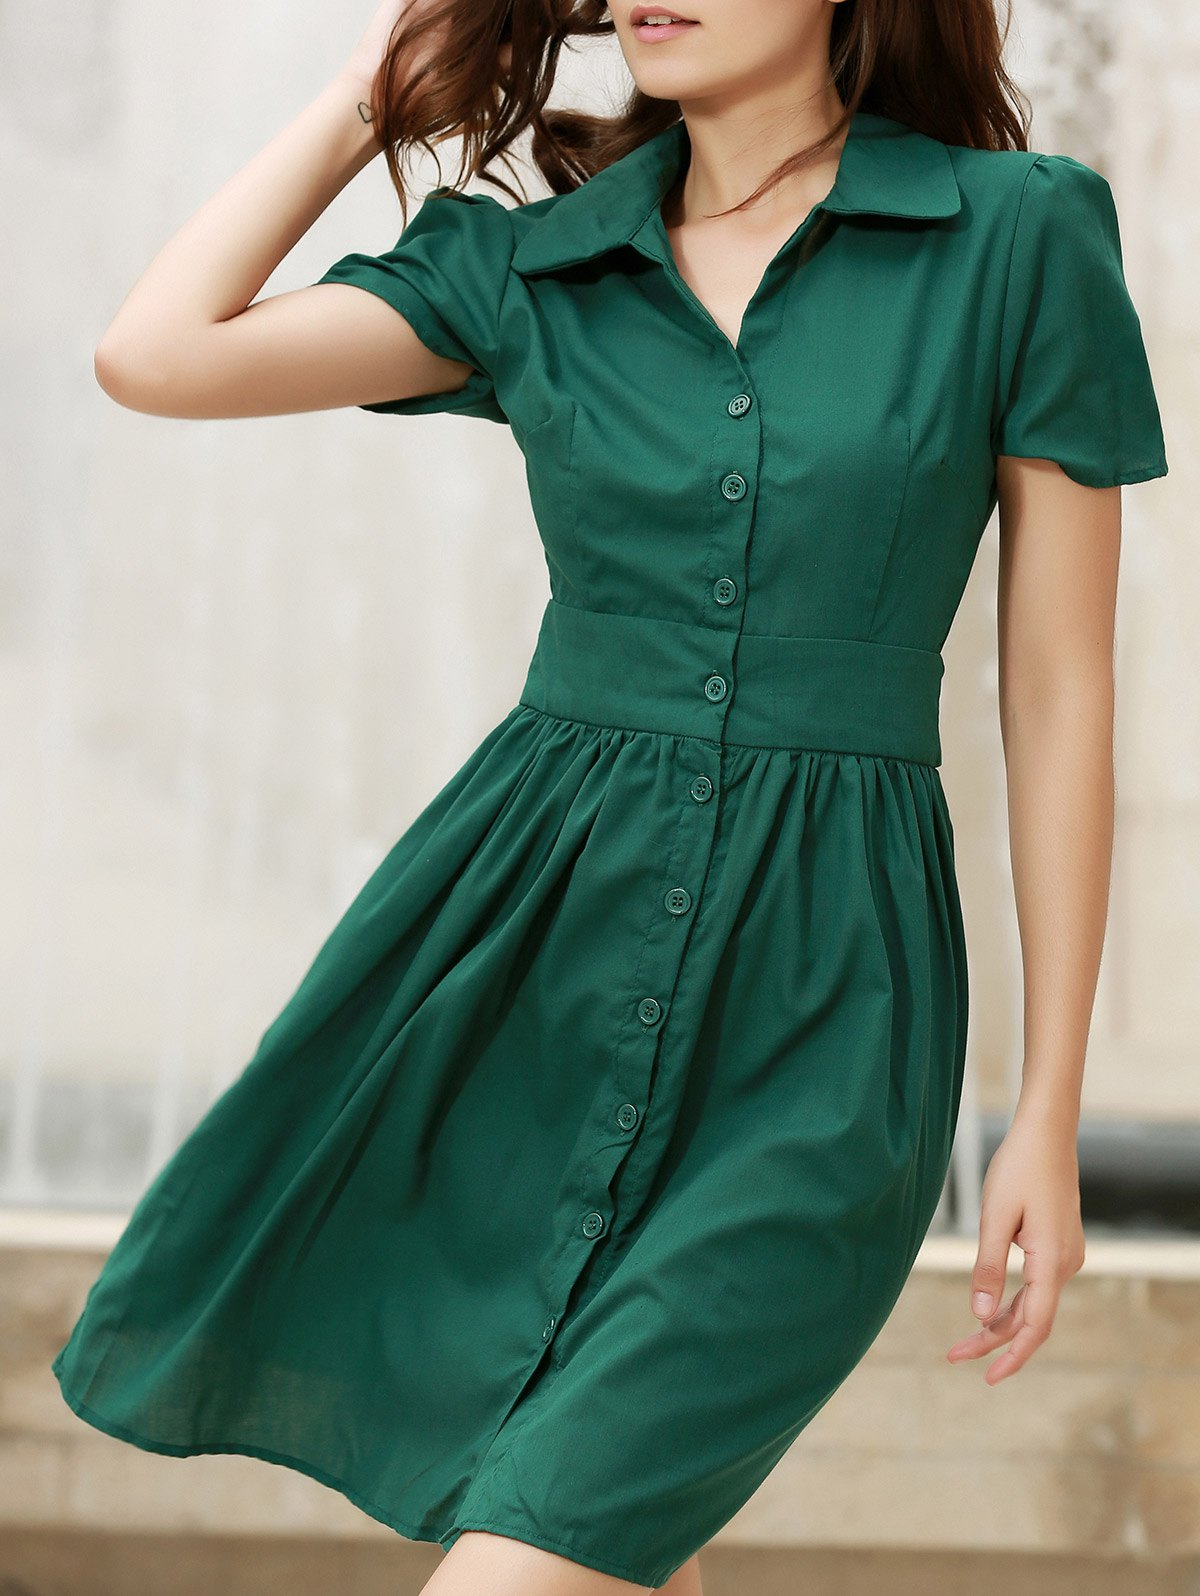 Vintage Turn-Down Collar Short Sleeve Lace-Up Single-Breasted Women's Dress - L GREEN